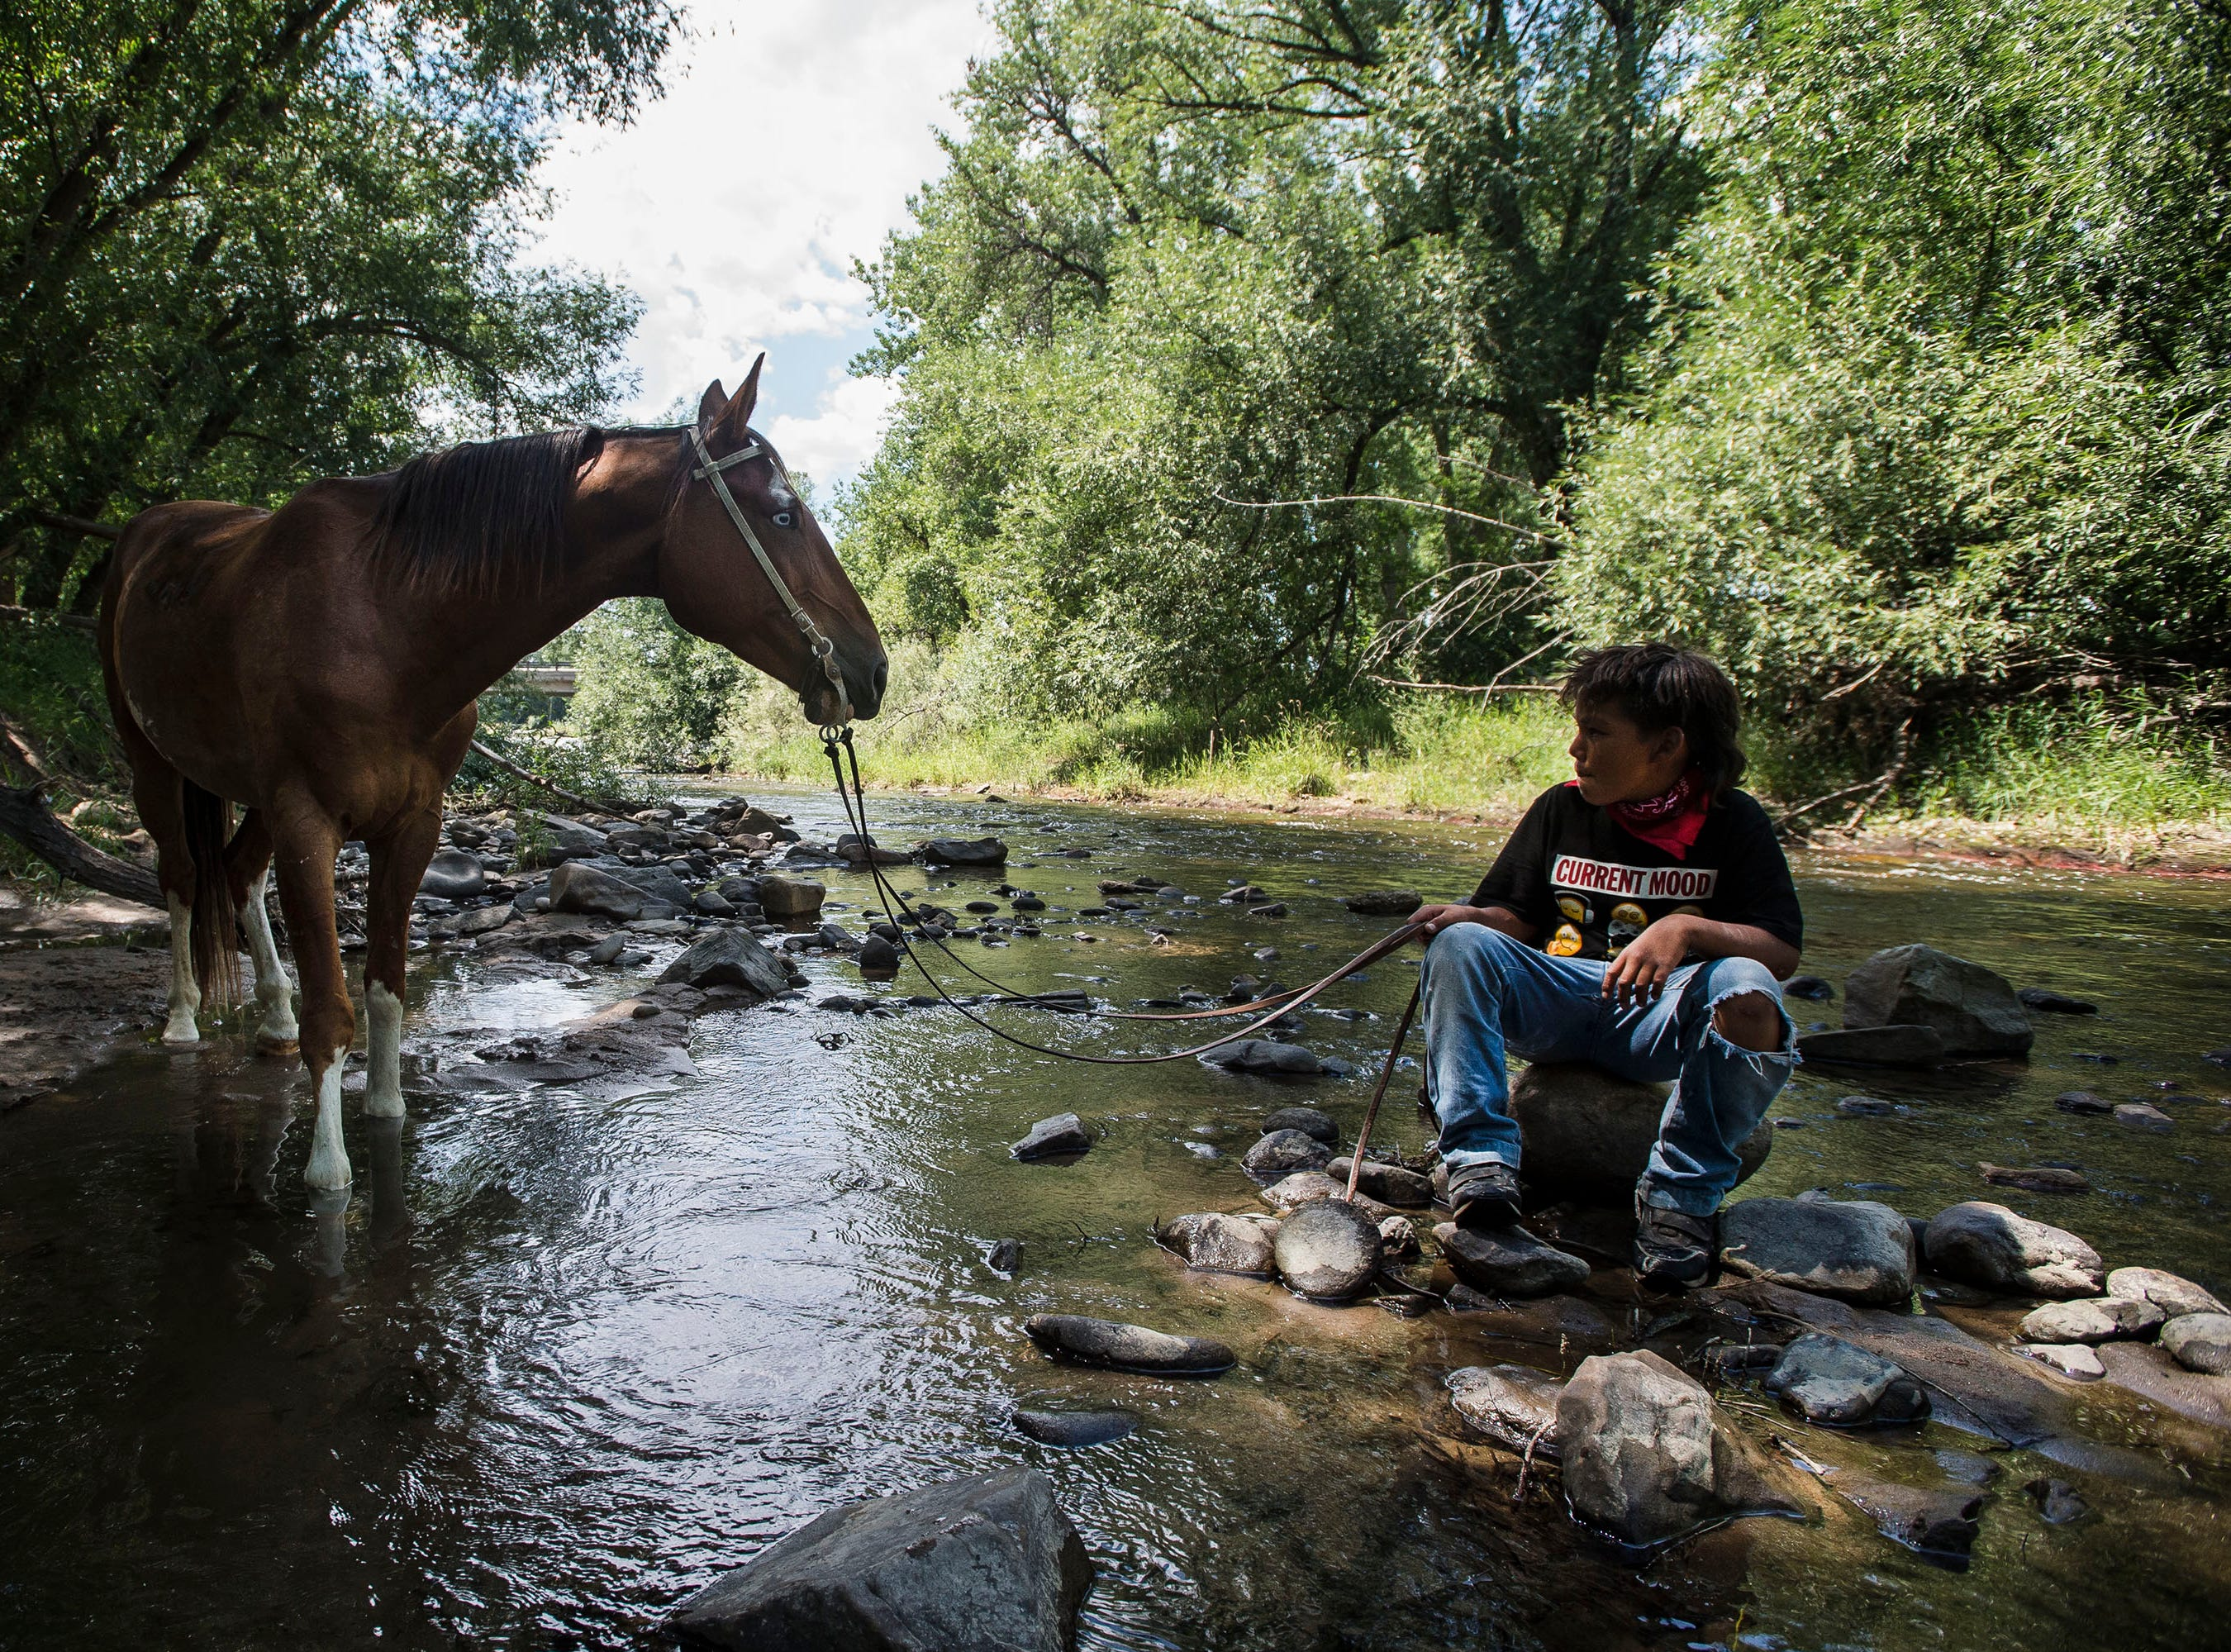 Thomas Belt, from the Pine Ridge Indian Reservation, lets his horse Bandoo take a rest in the Big Thompson River after riding into town on Thursday, July 19, 2018, at Namaqua Park in Loveland, Colo, before heading North to Fort Collins.